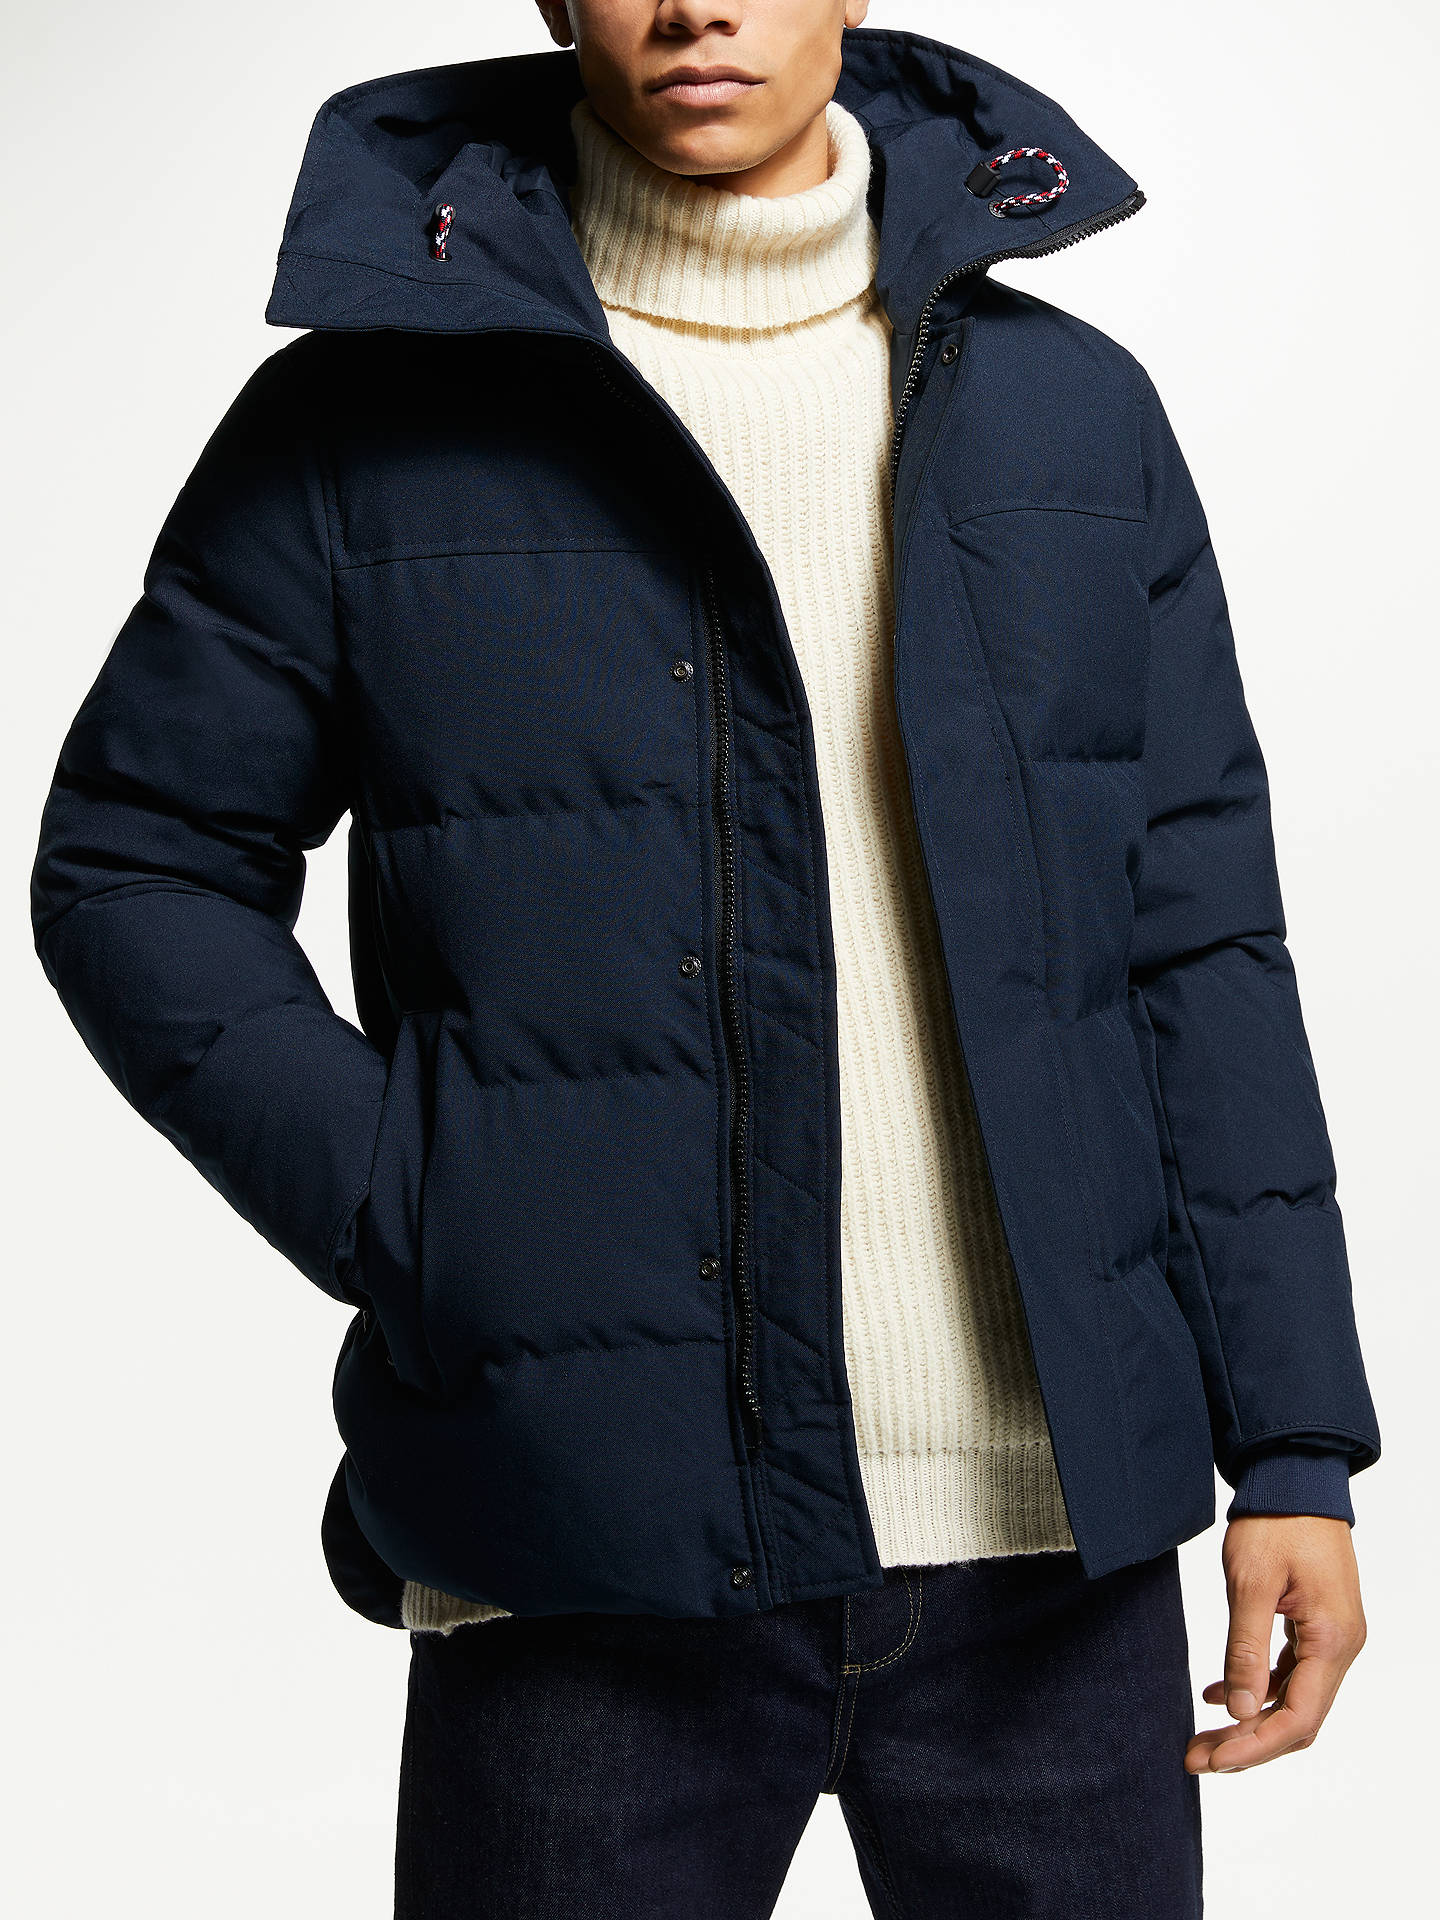 BuyTommy Hilfiger Canvas Down Bomber Jacket, Navy, M Online at  johnlewis.com ... 2a27259def